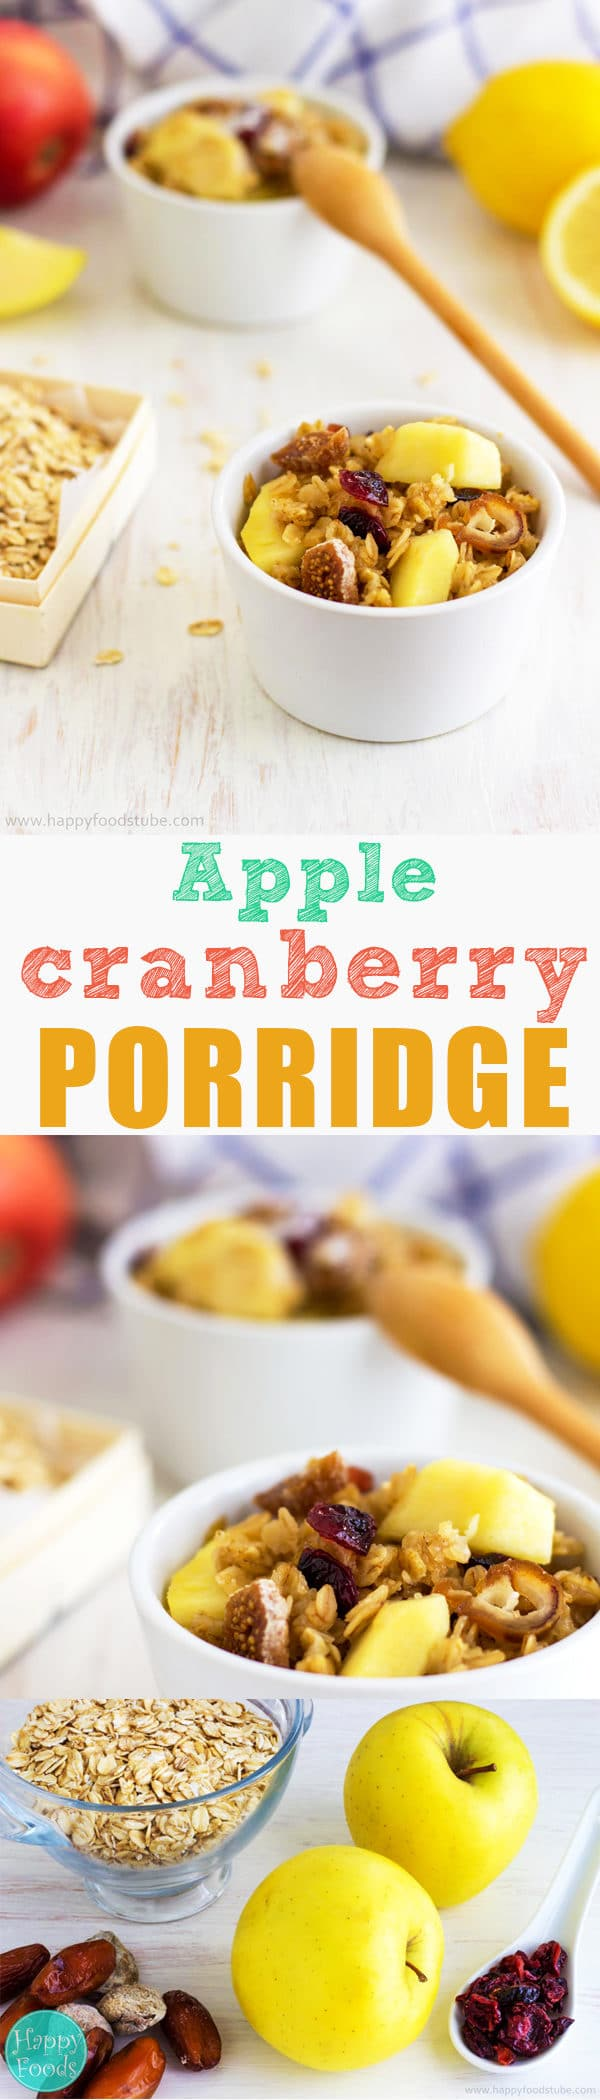 Apple & Cranberry Porridge - Start your day with a bowl of this mouth-watering porridge. It's quick, filling and more importantly it's healthy! | happyfoodstube.com